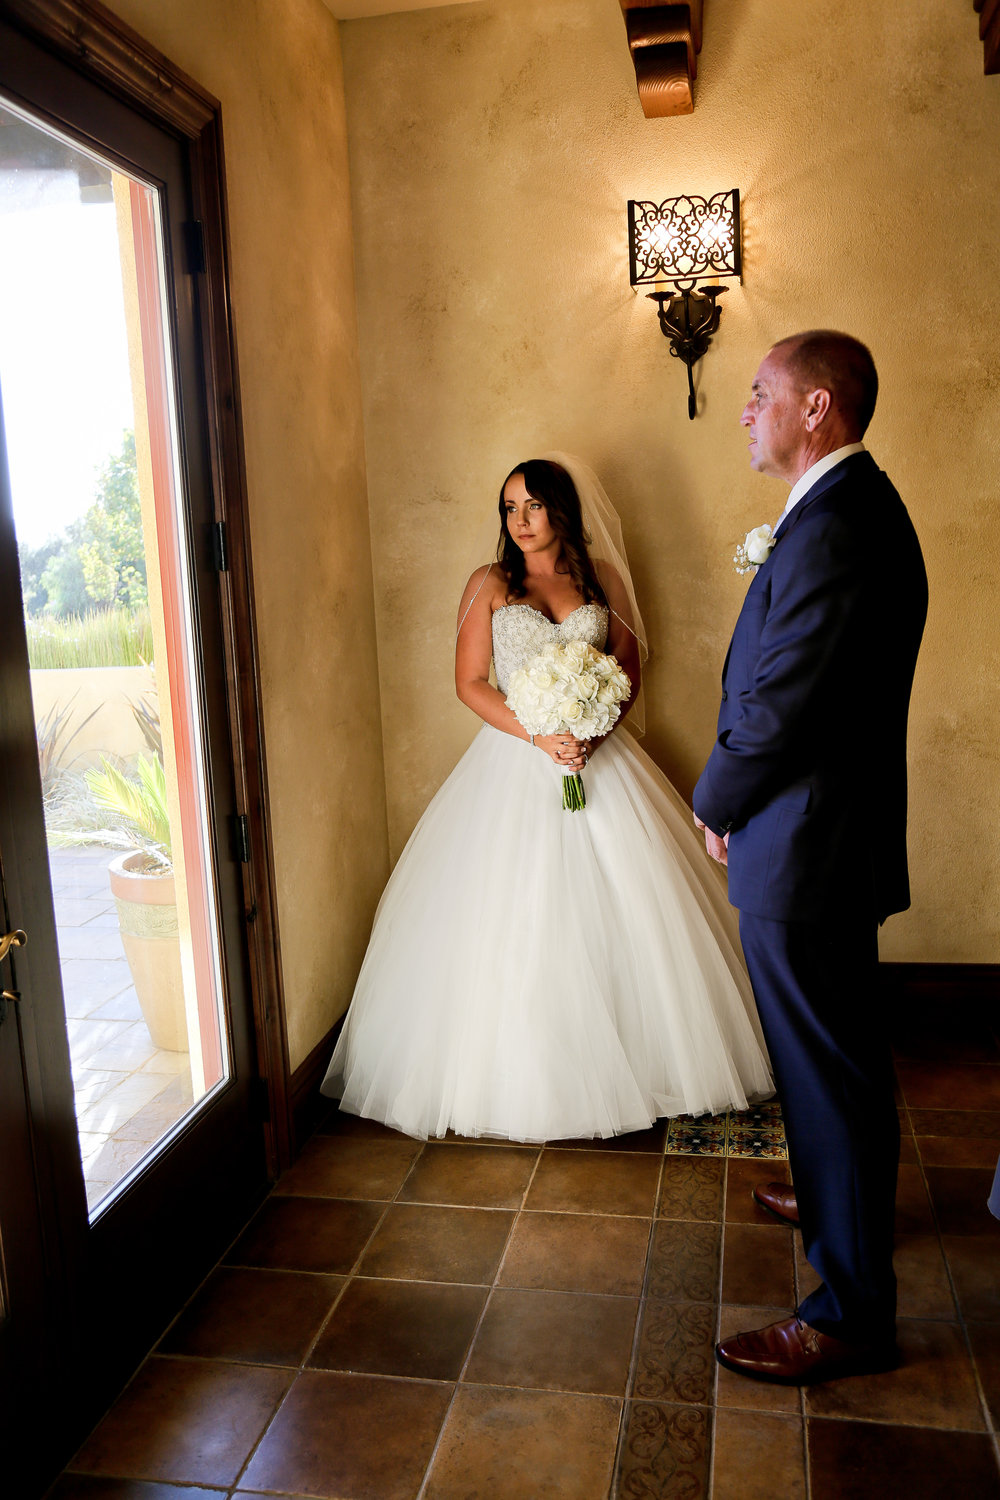 A Las Positas Vineyards Wedding - Stacey & Kelly Chance Discovery Bay Studios